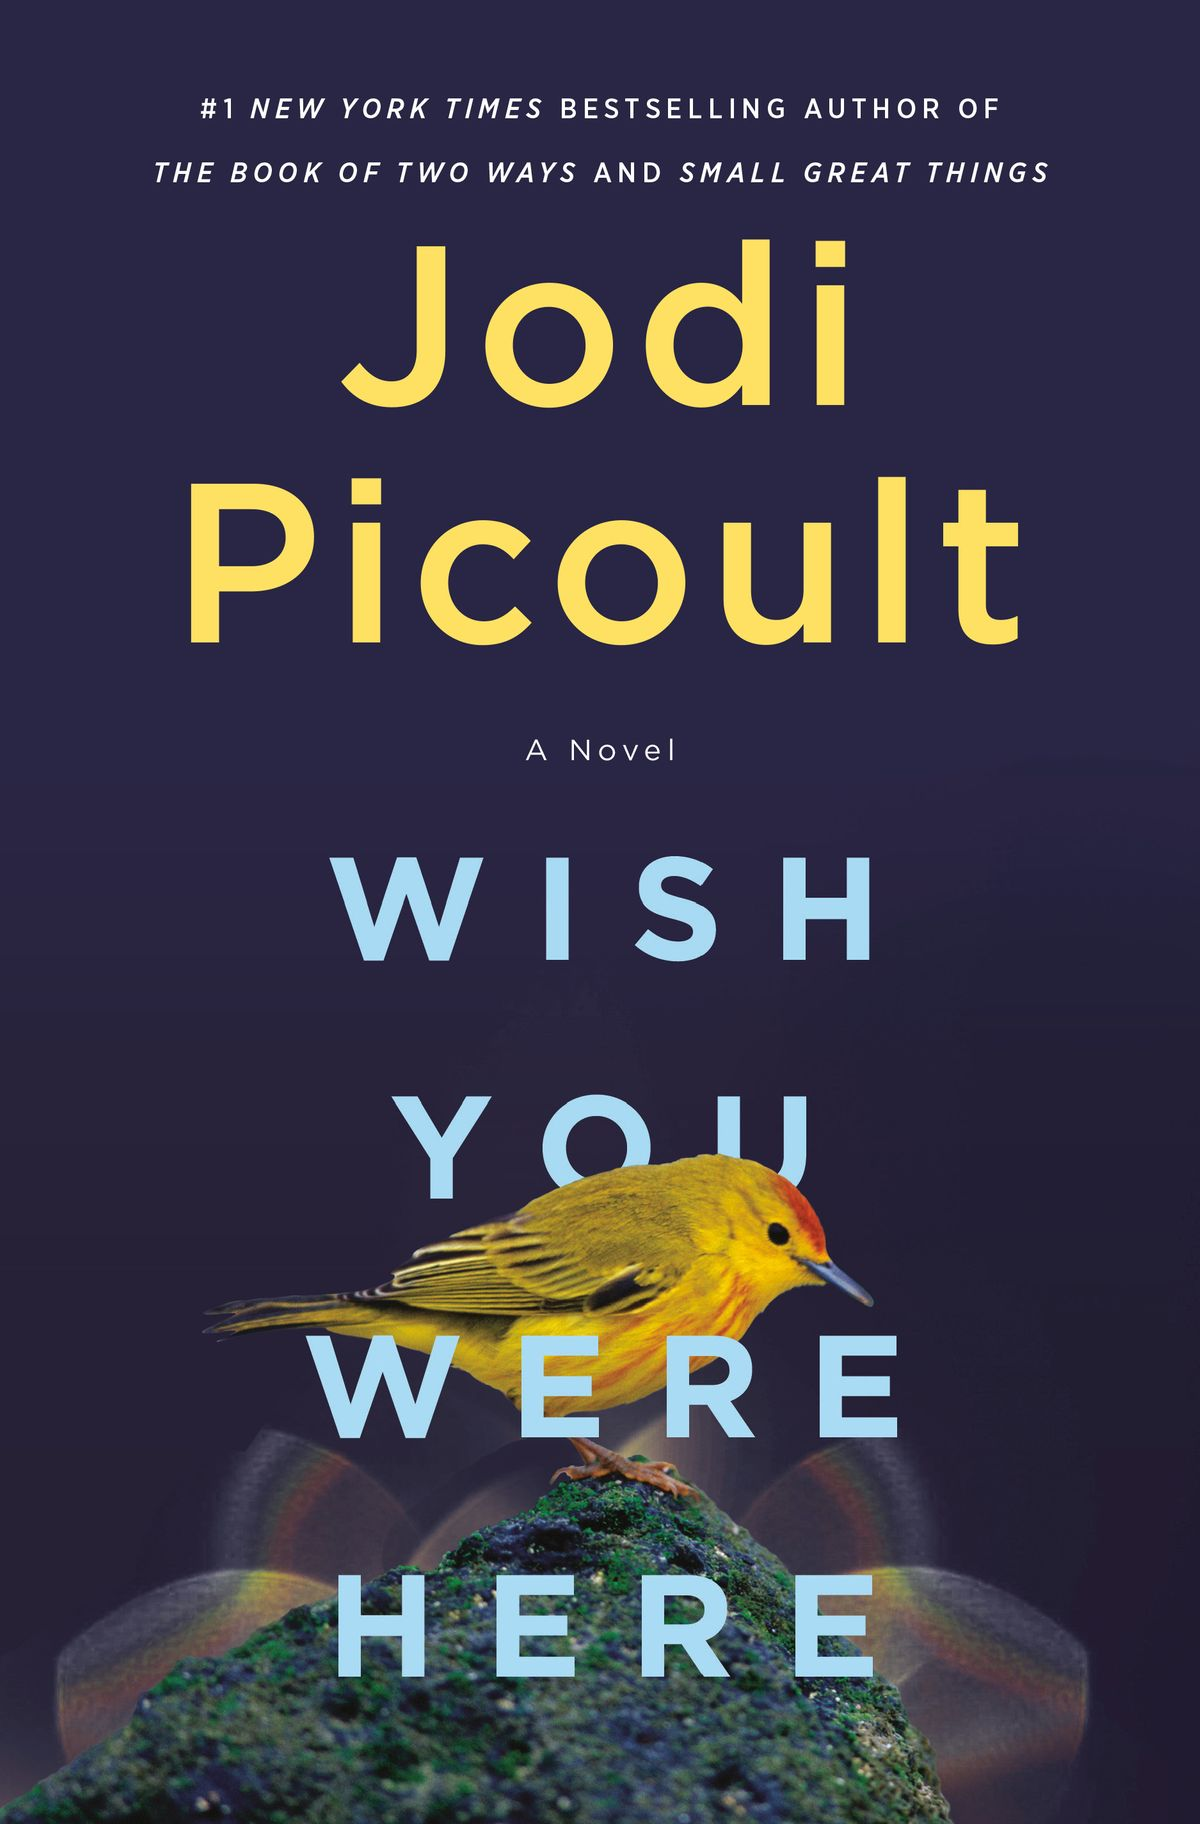 Wish You Were Here by Jodi Picoult novel Release Date